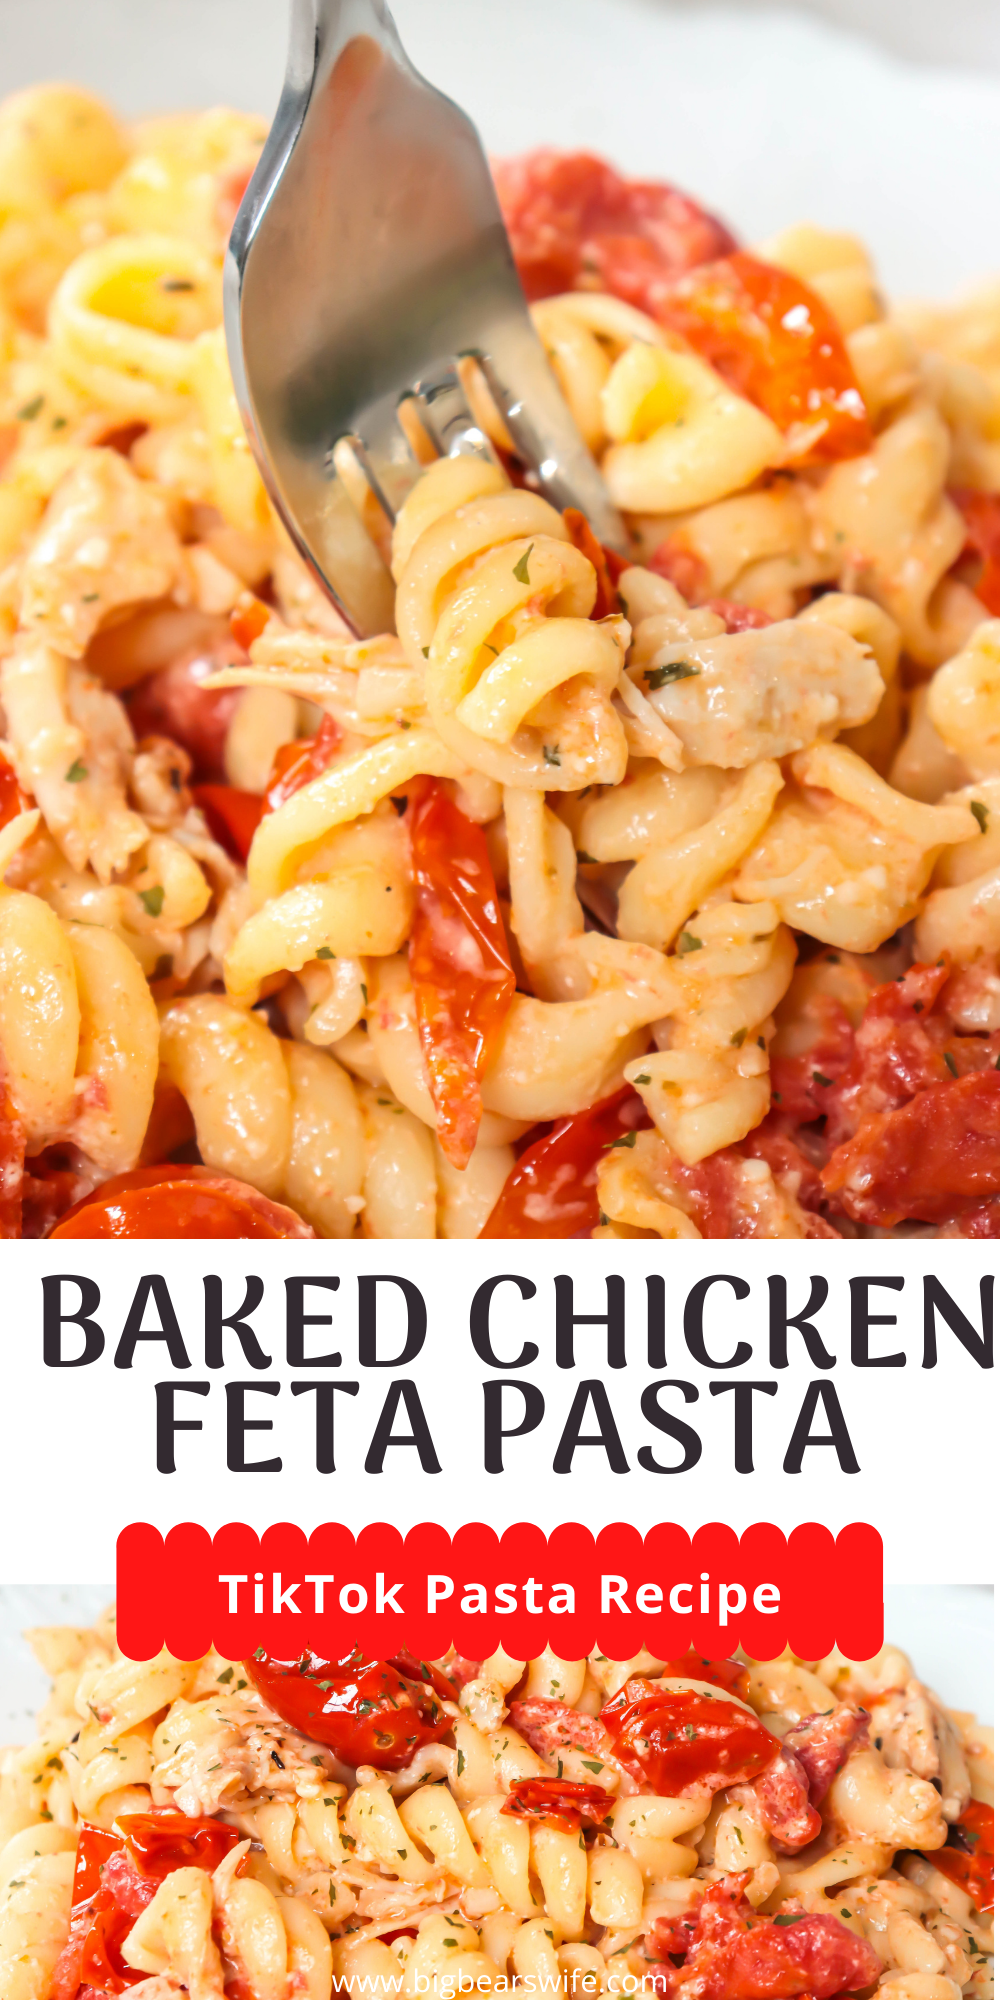 A little chicken twist on the TikTok famous Chicken Feta Pasta is what we're servings up today! This  Baked Chicken Feta Pasta is delicious and hardly takes any work in the kitchen to toss together!  via @bigbearswife